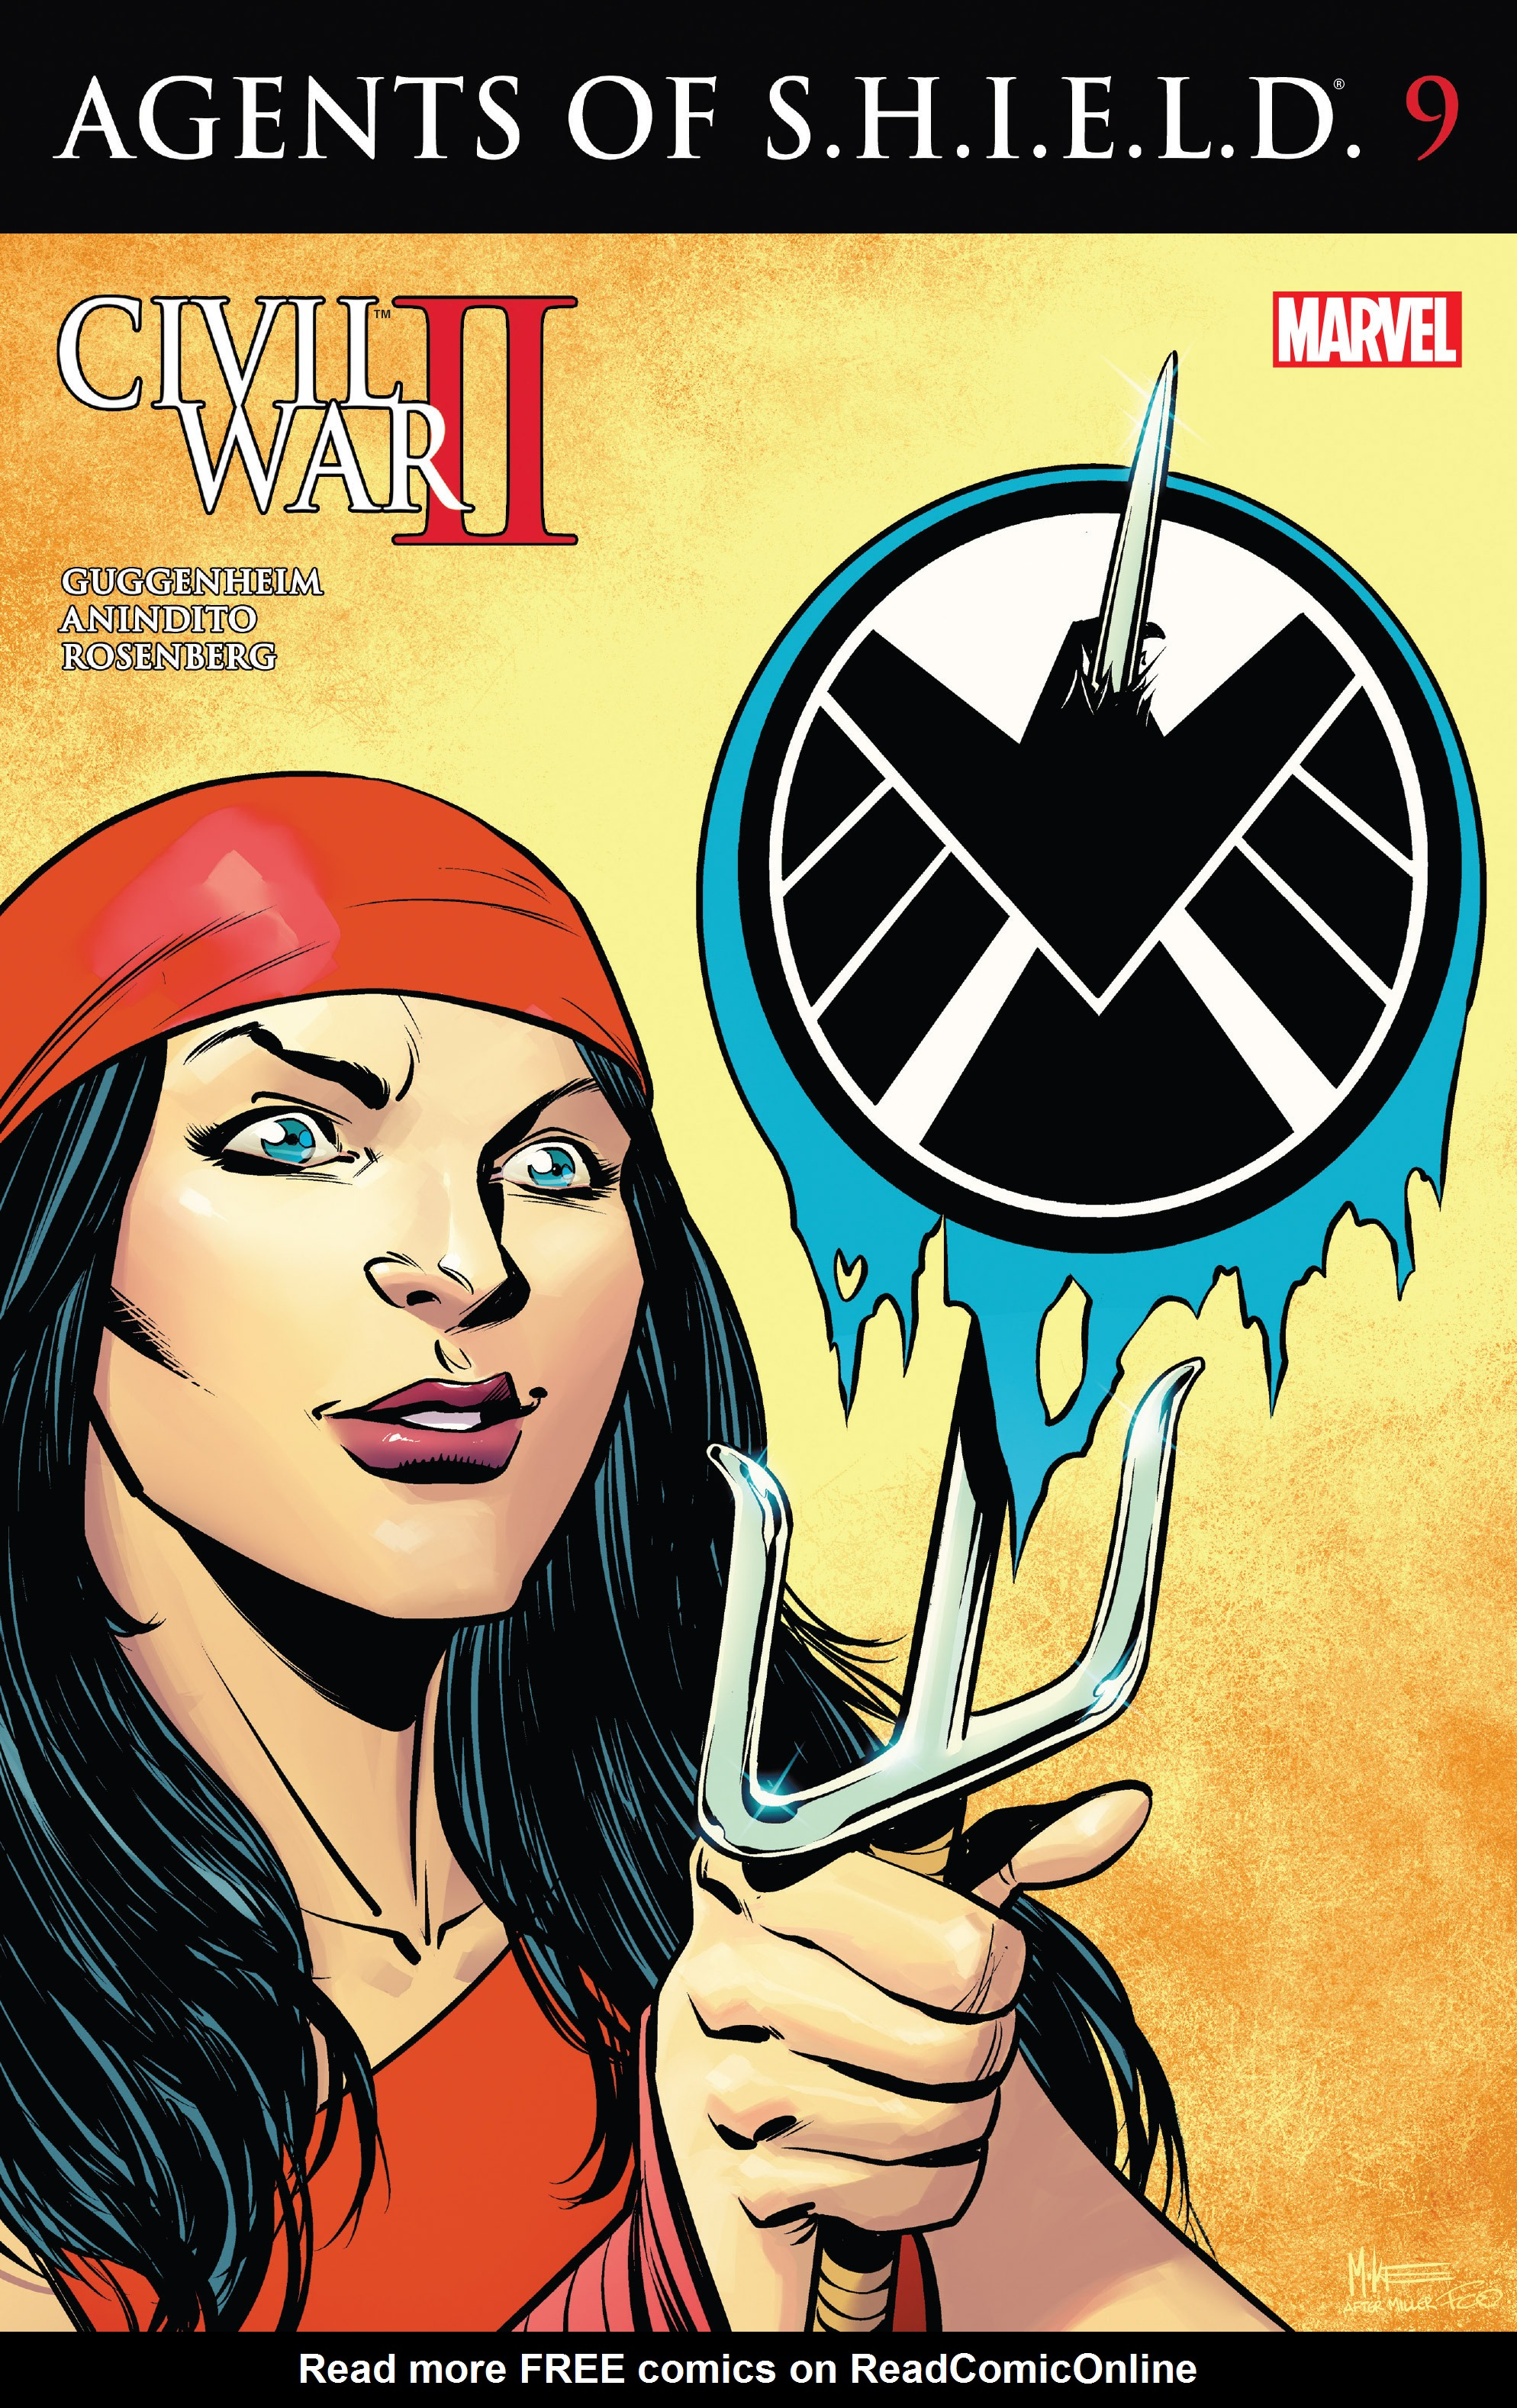 Read online Agents of S.H.I.E.L.D. comic -  Issue #9 - 1